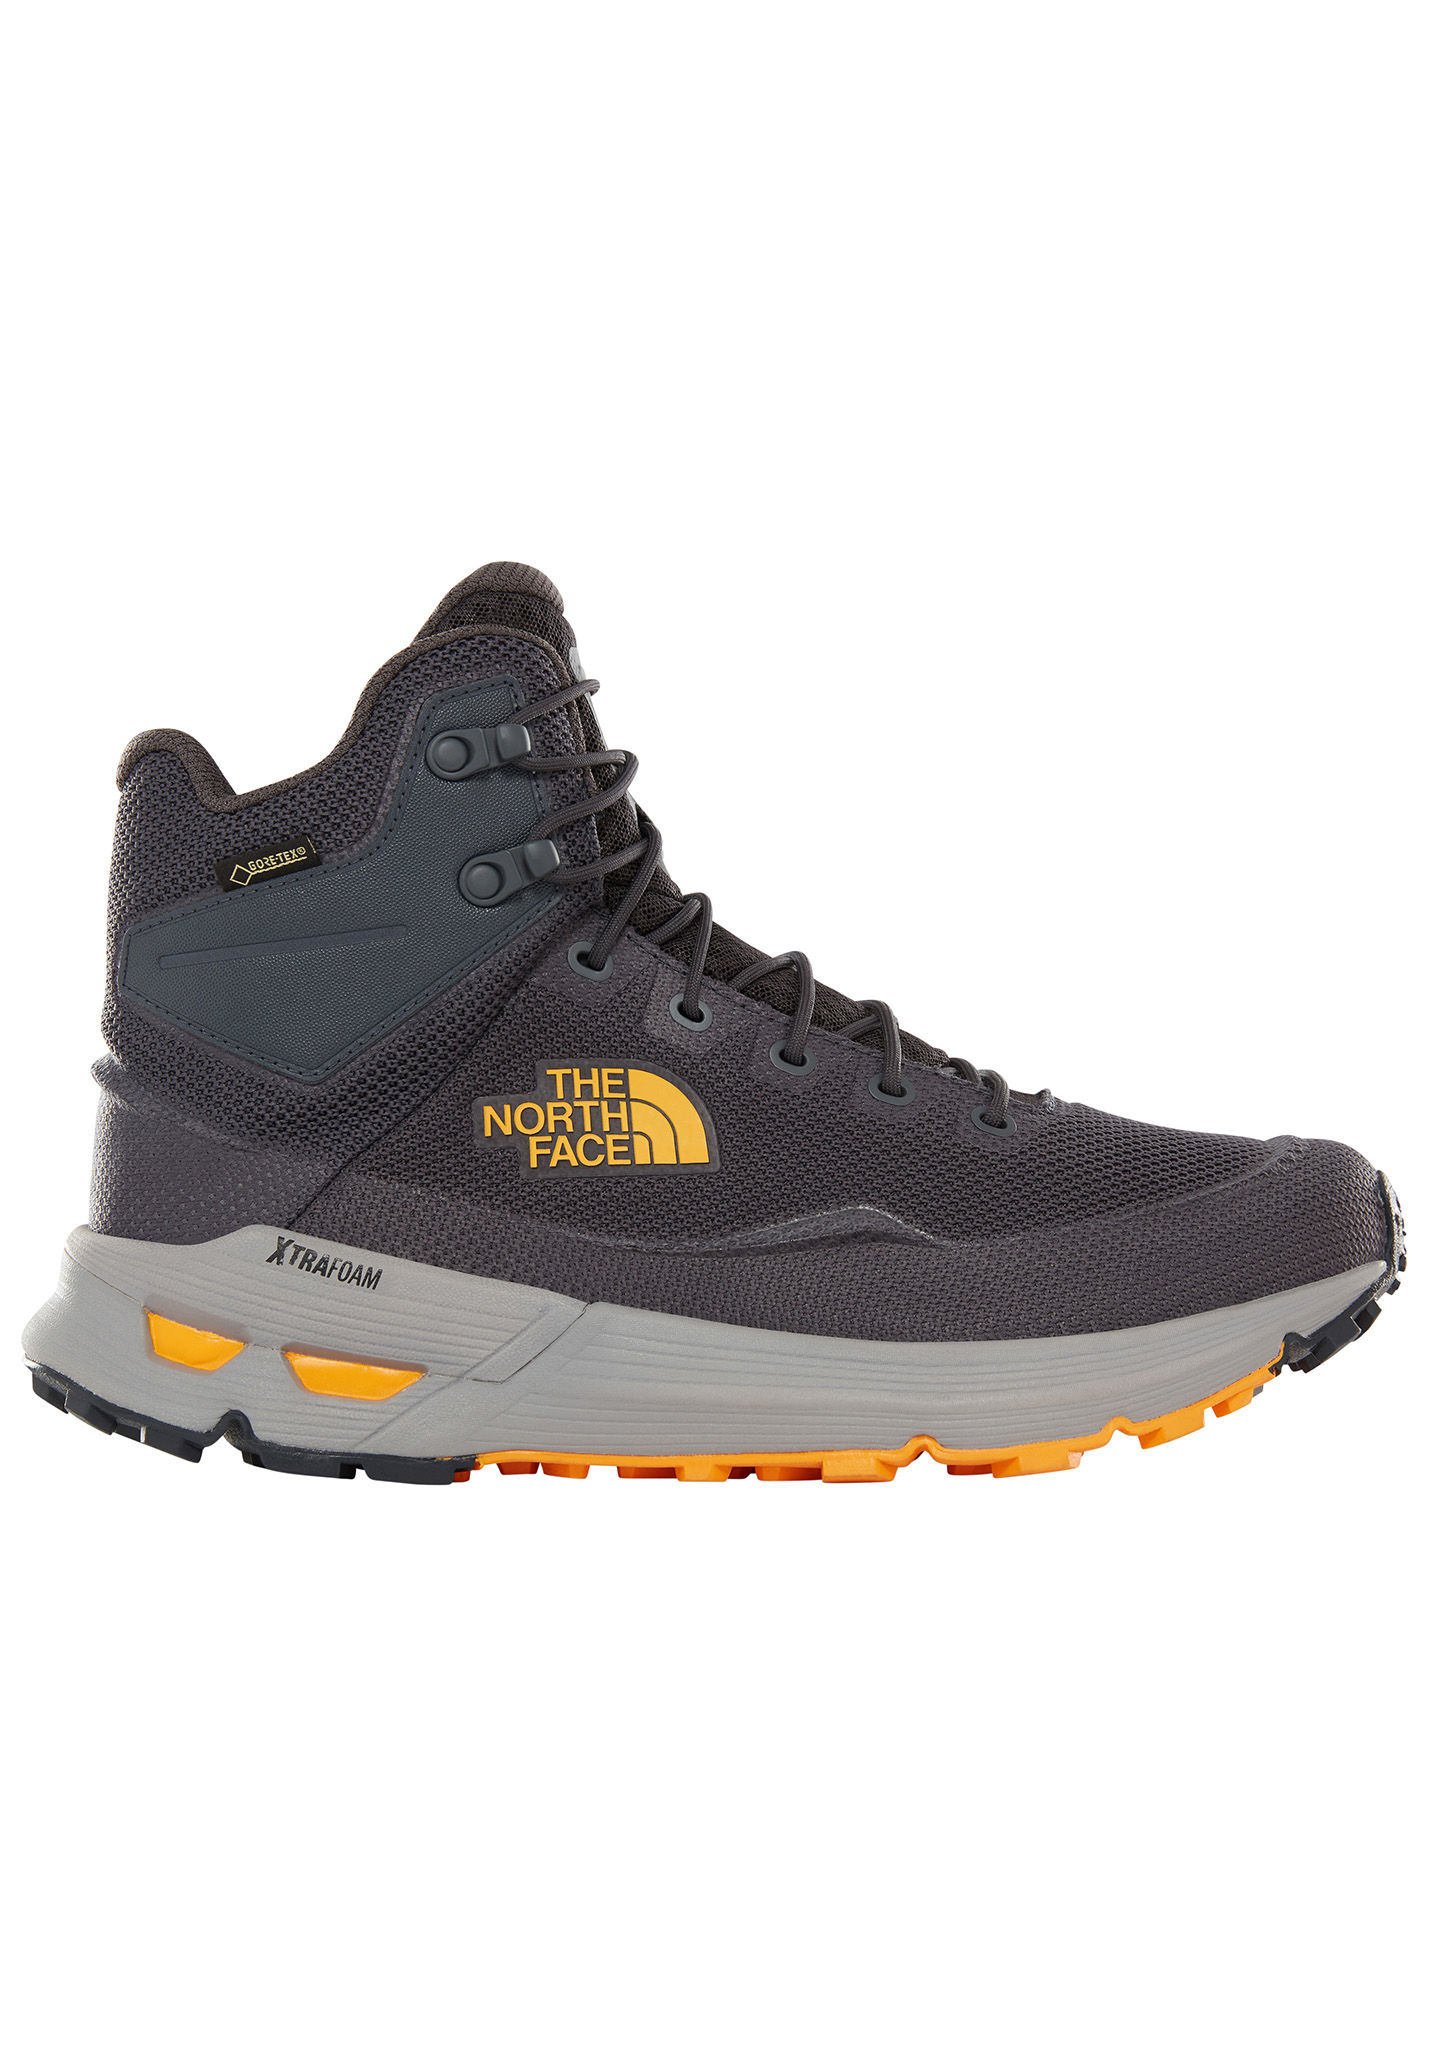 93f2b5644 THE NORTH FACE Safien Mid GTX - Trekking Shoes for Men - Grey - Planet  Sports